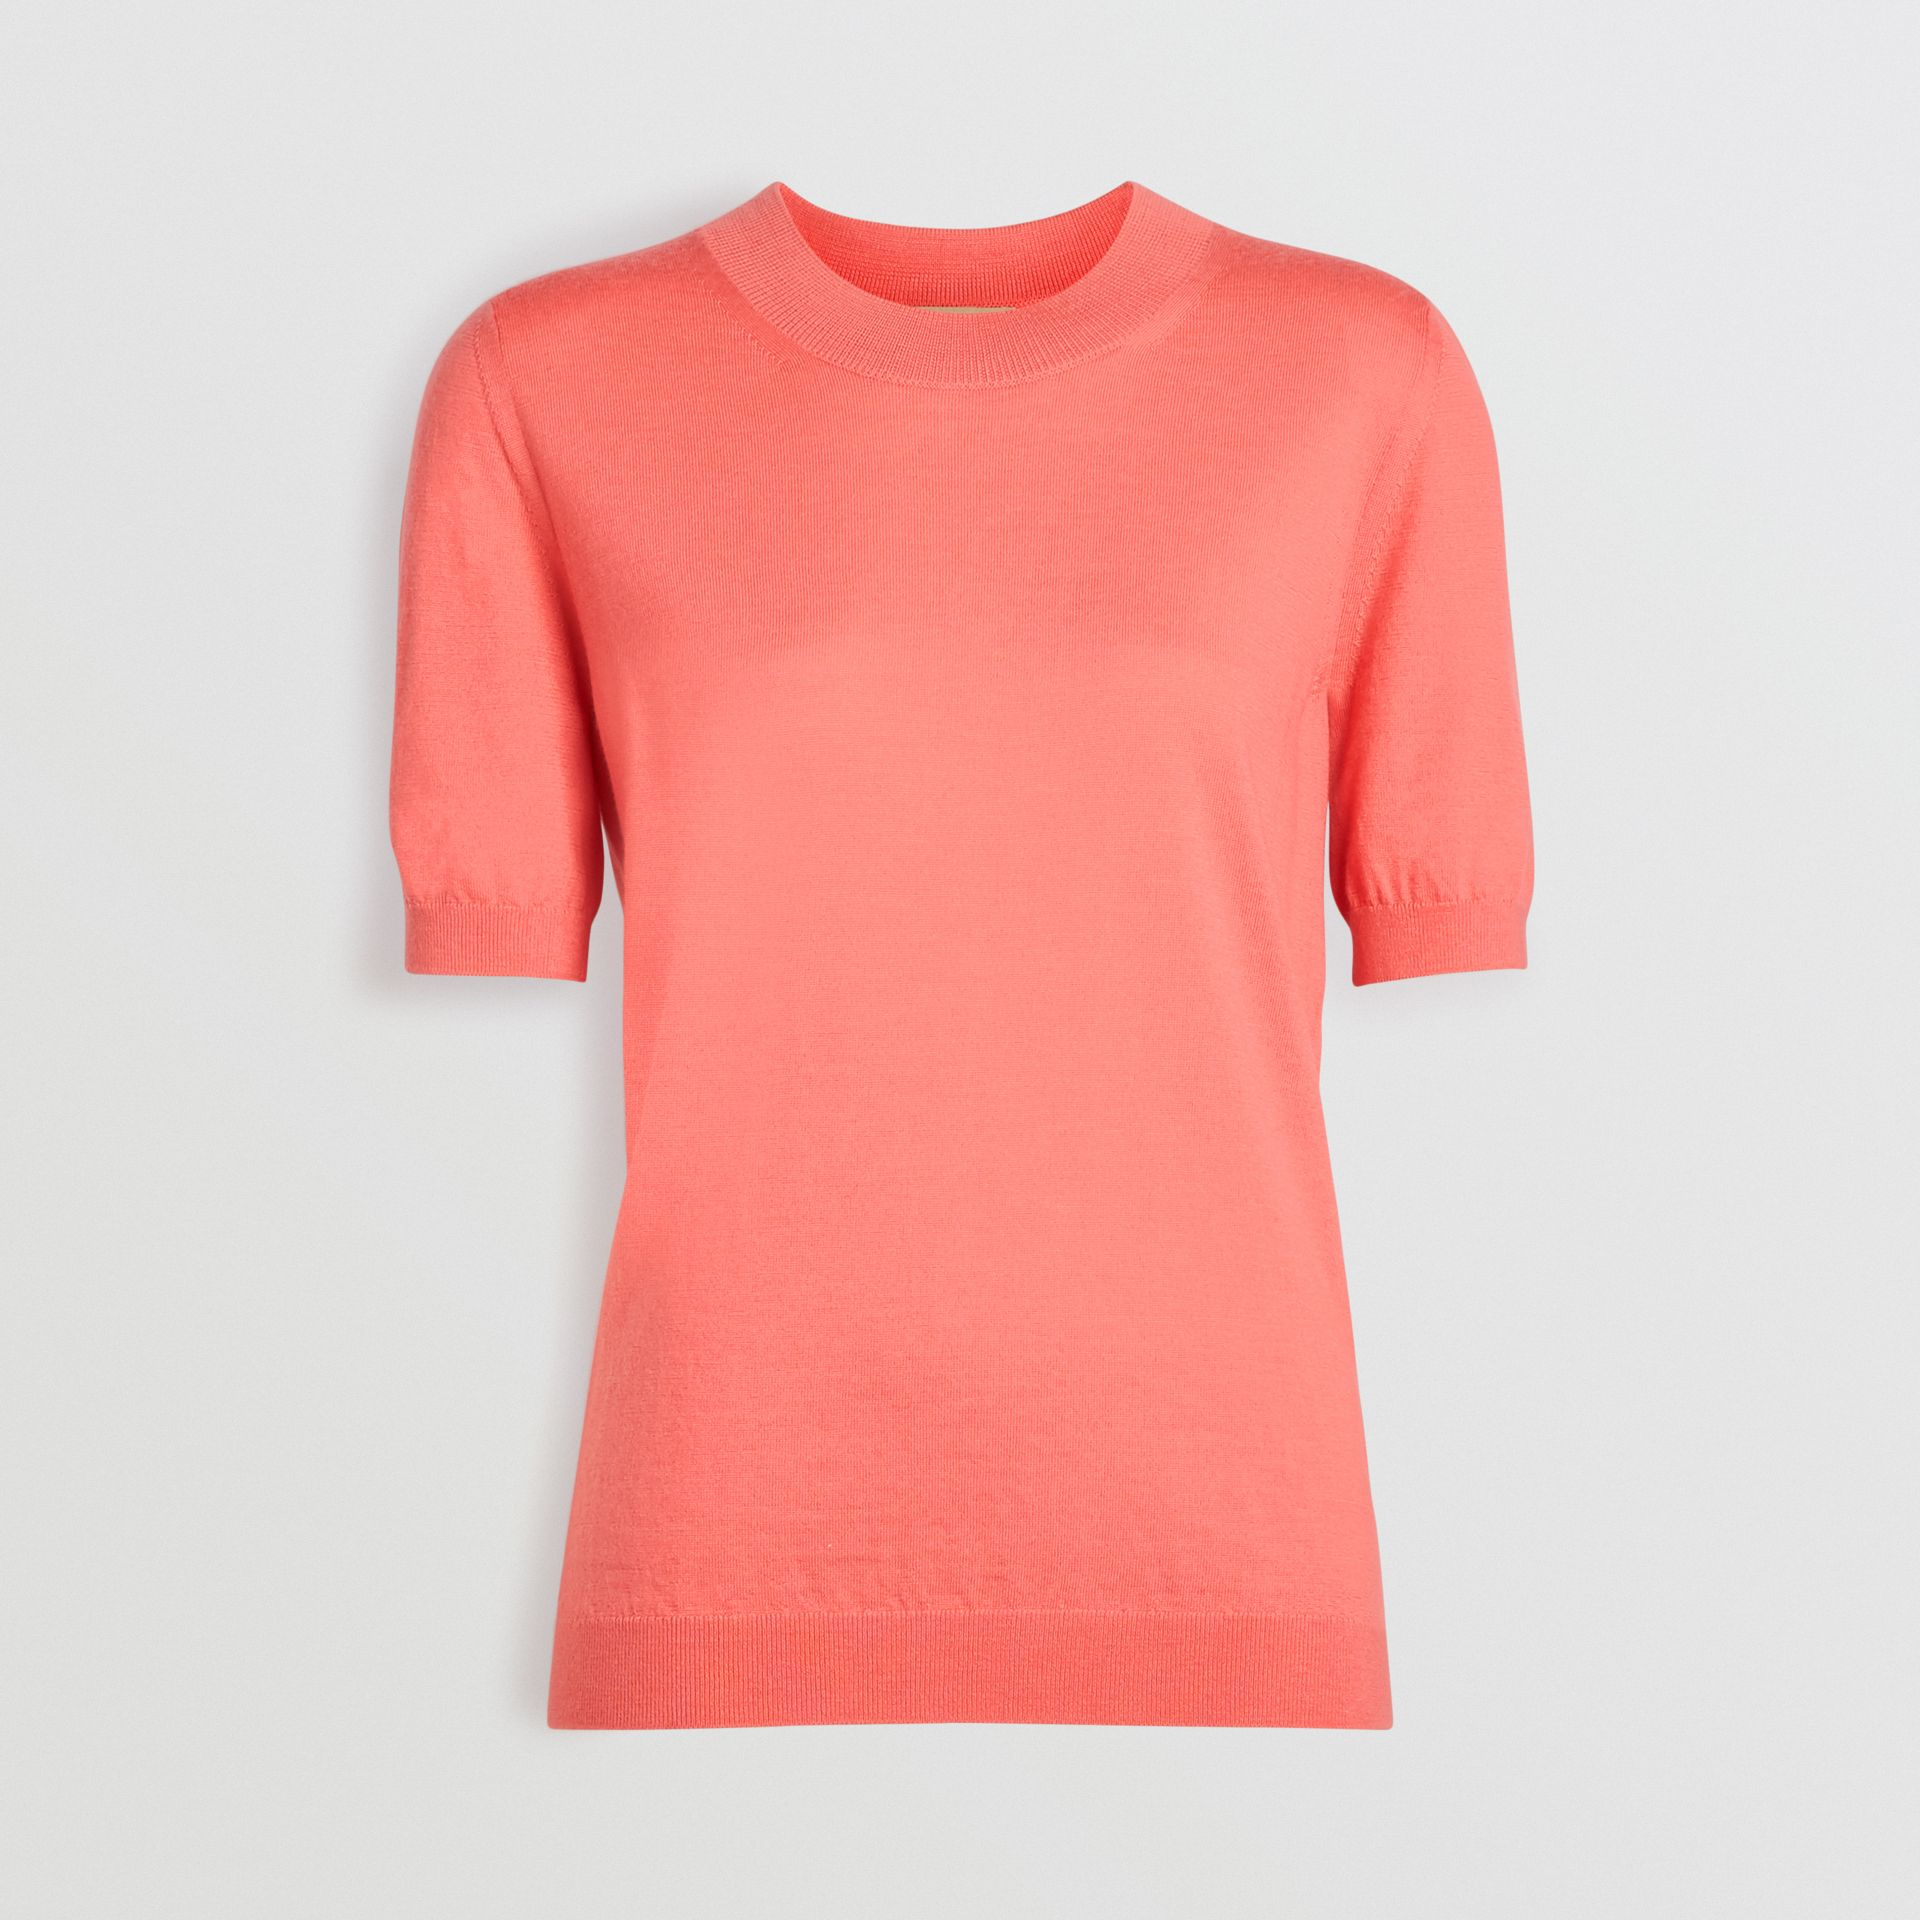 Crew Neck Merino Wool Sweater in Coral - Women | Burberry Singapore - gallery image 3